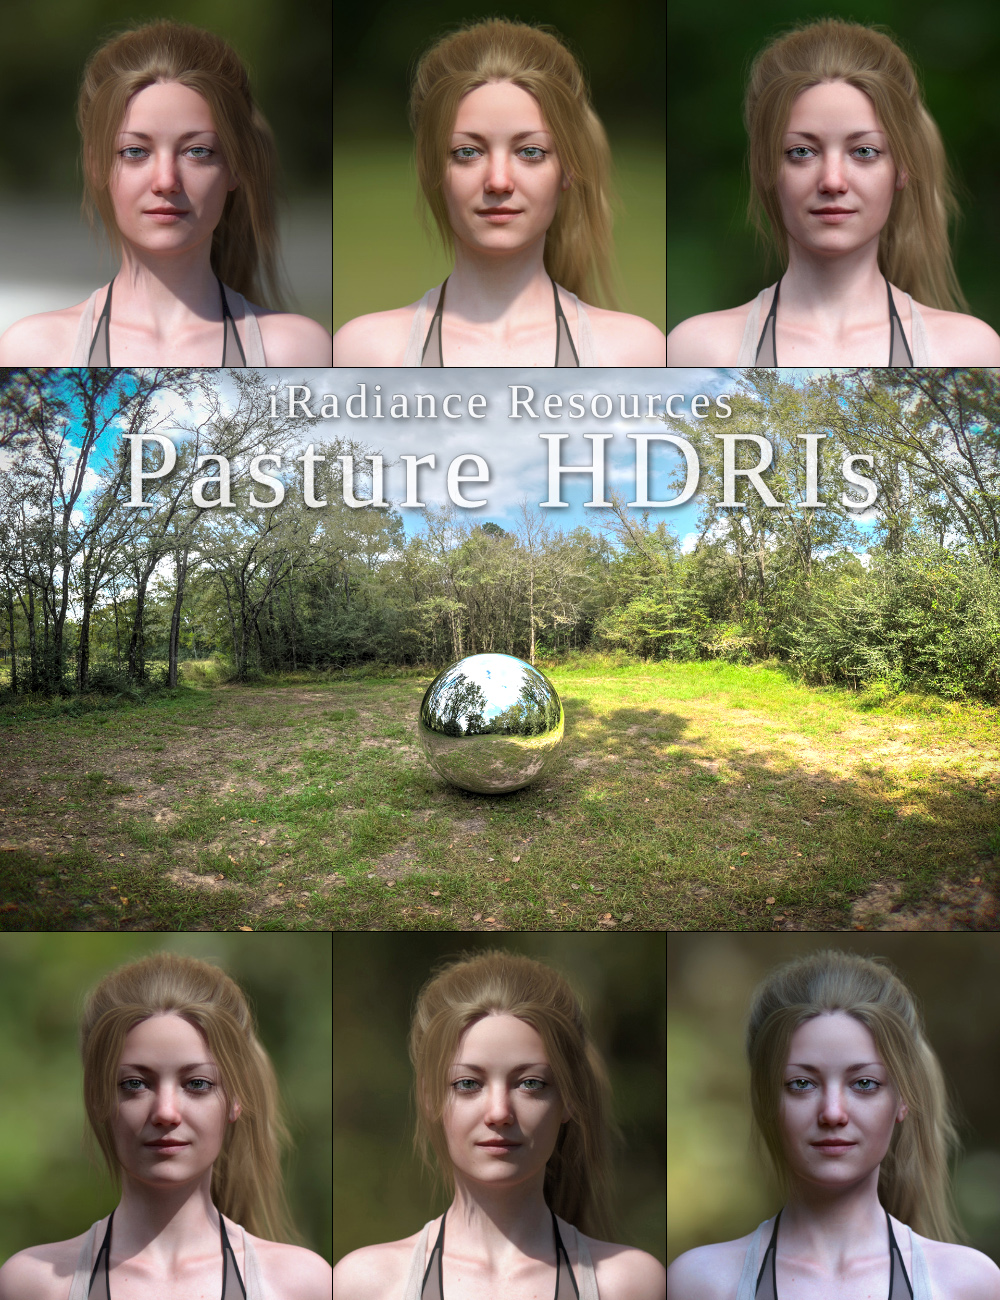 iRadiance HDR Resources - Country Pasture by: DimensionTheory, 3D Models by Daz 3D